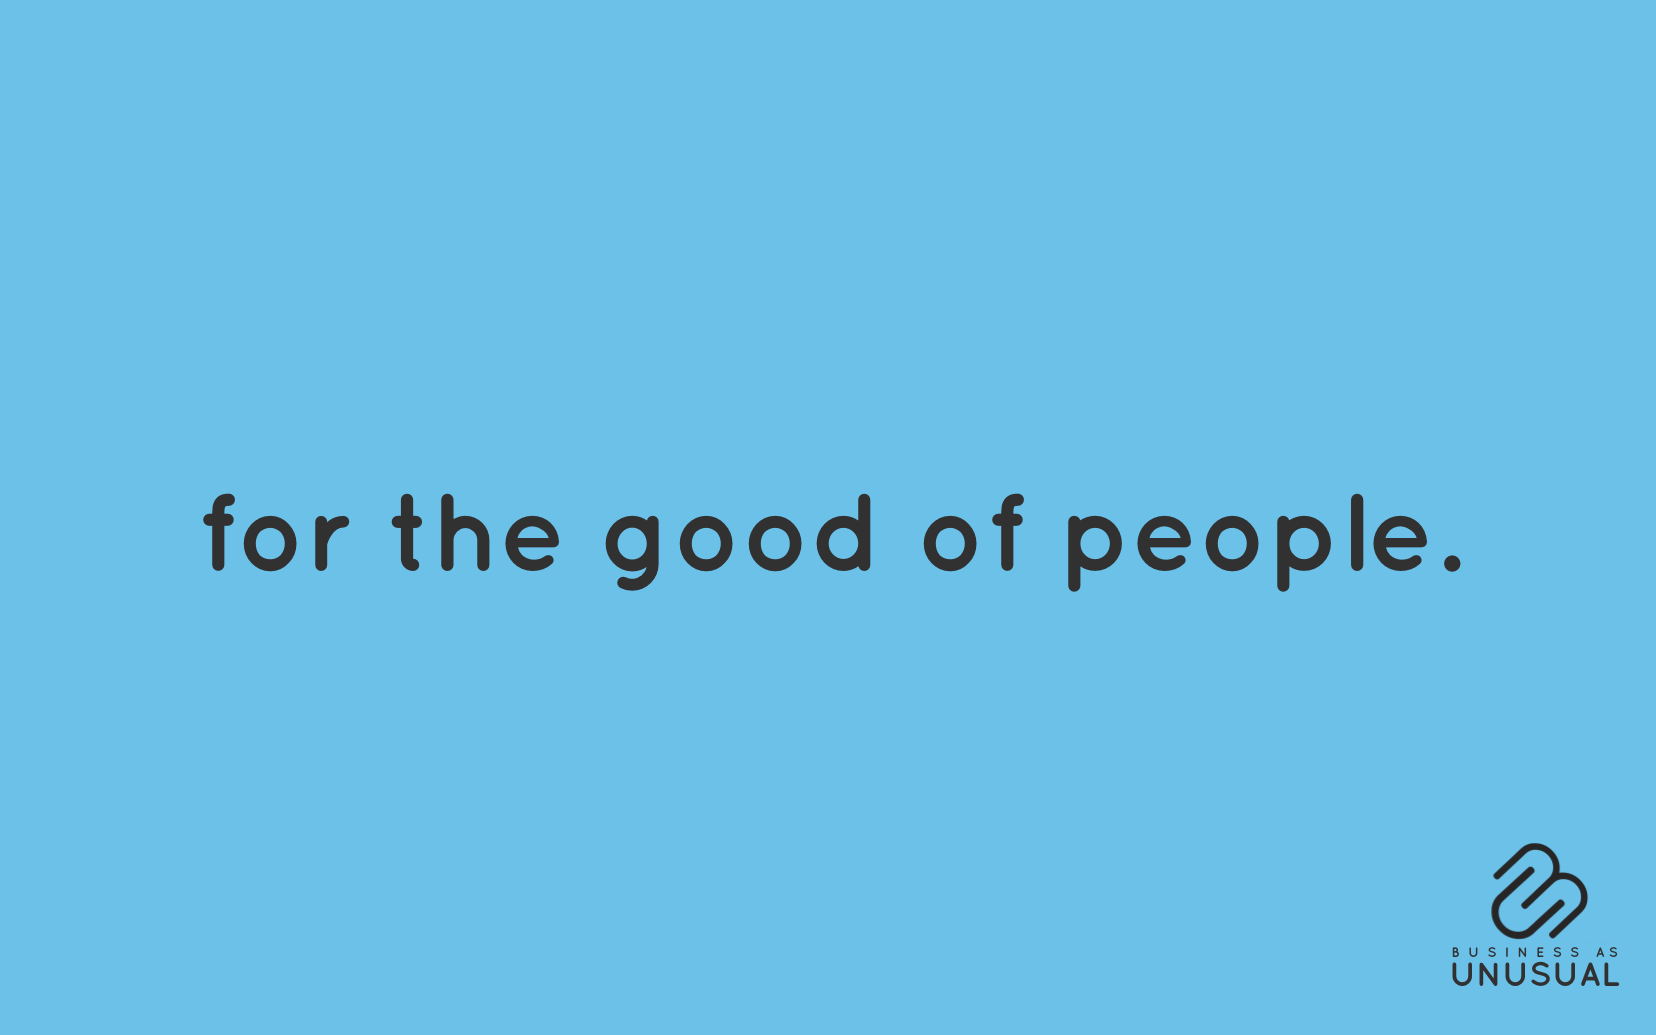 for the good of people